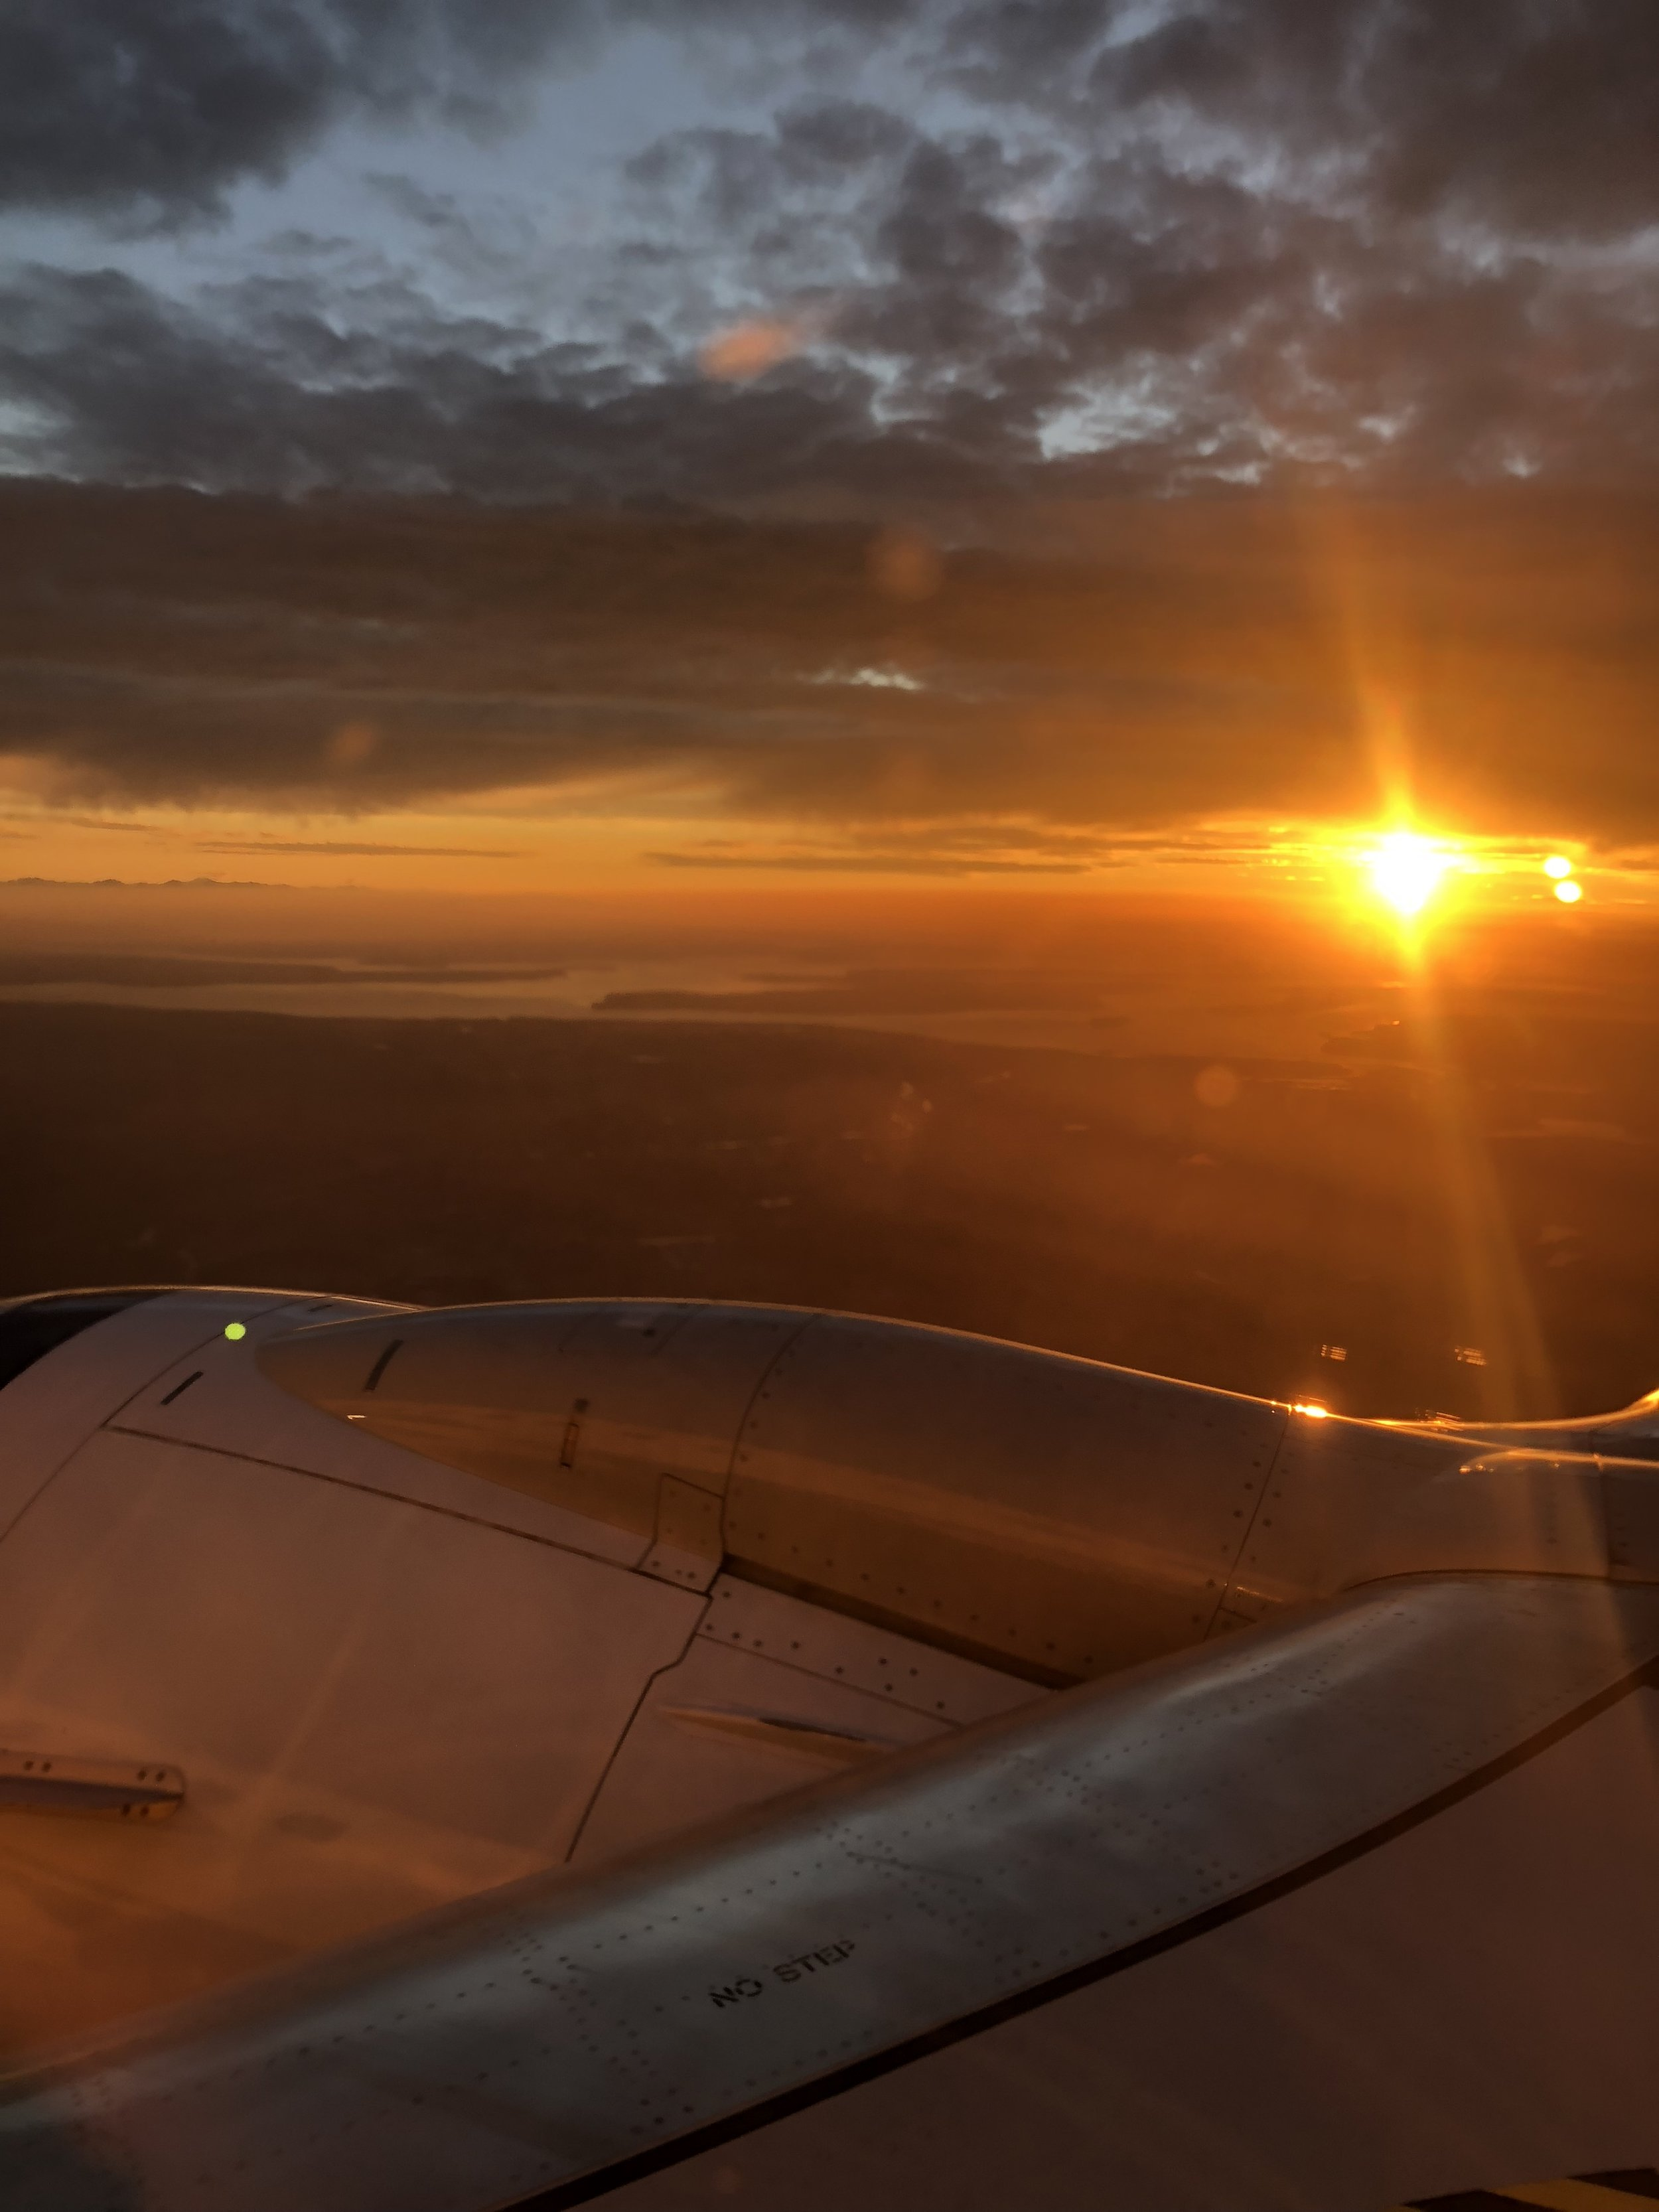 This was the sunset that greeted us as we flew back into Seattle.